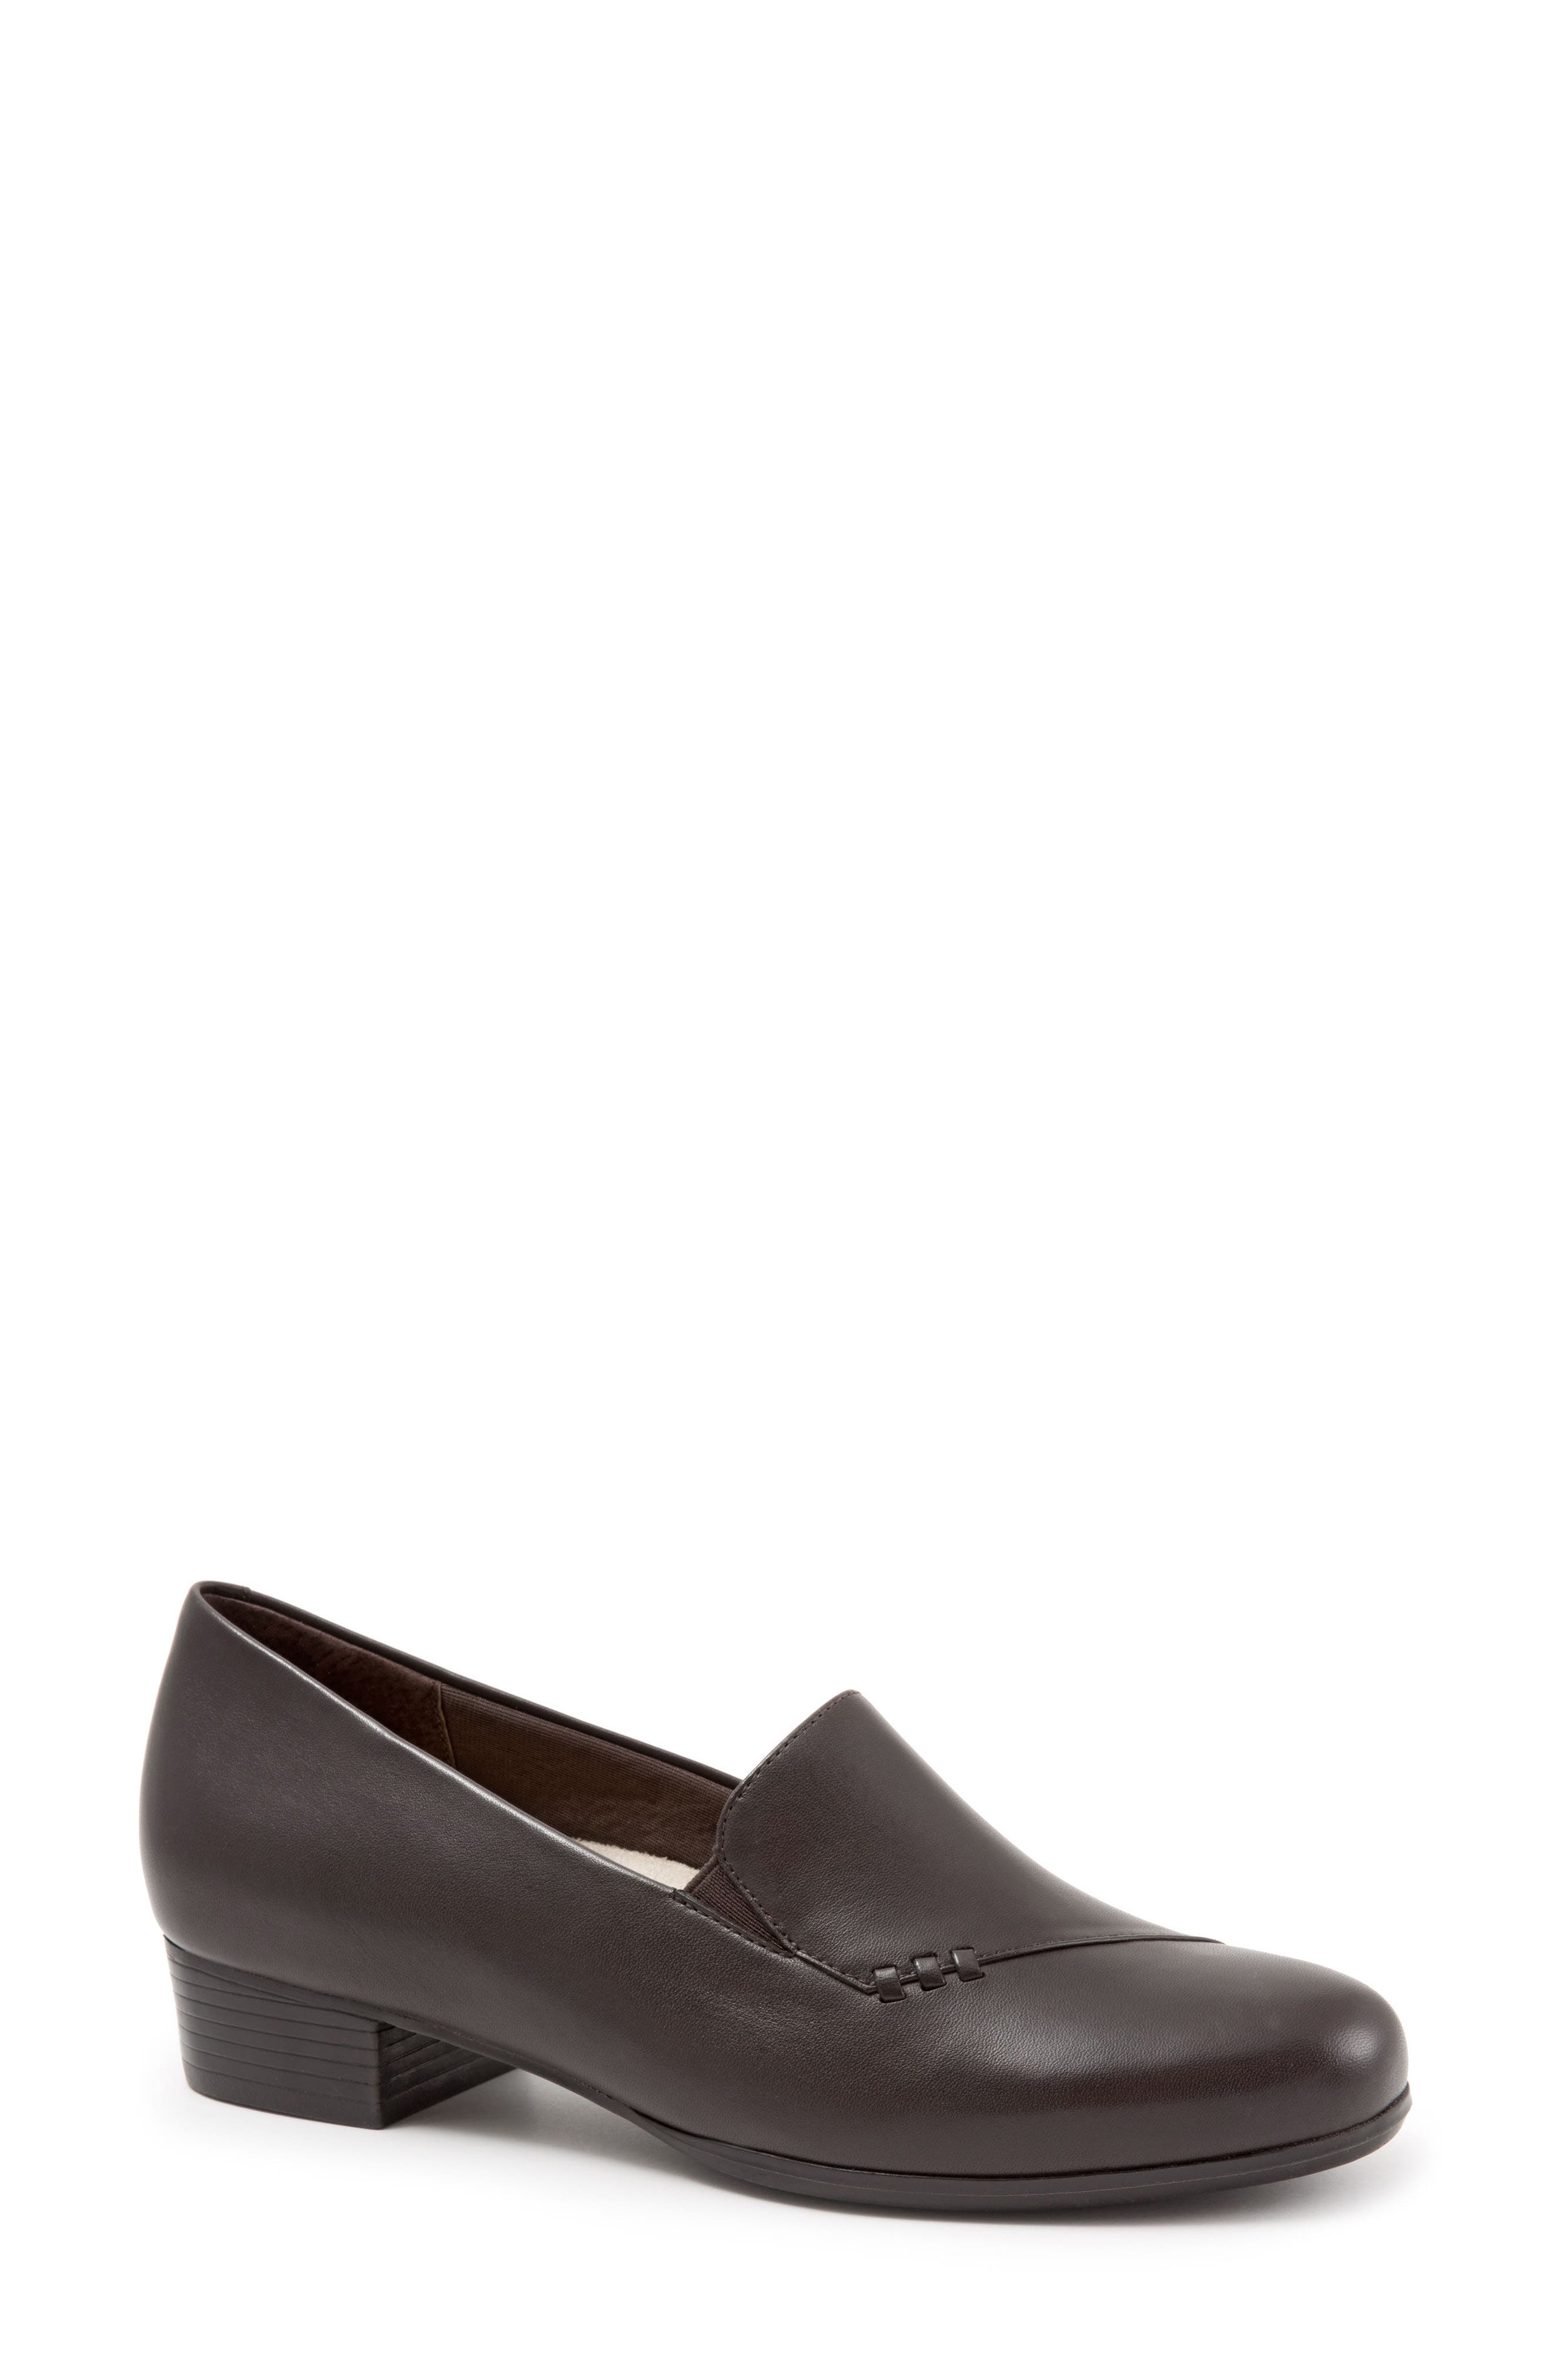 Alternate Image 1 Selected - Trotters Moment Pump (Women)